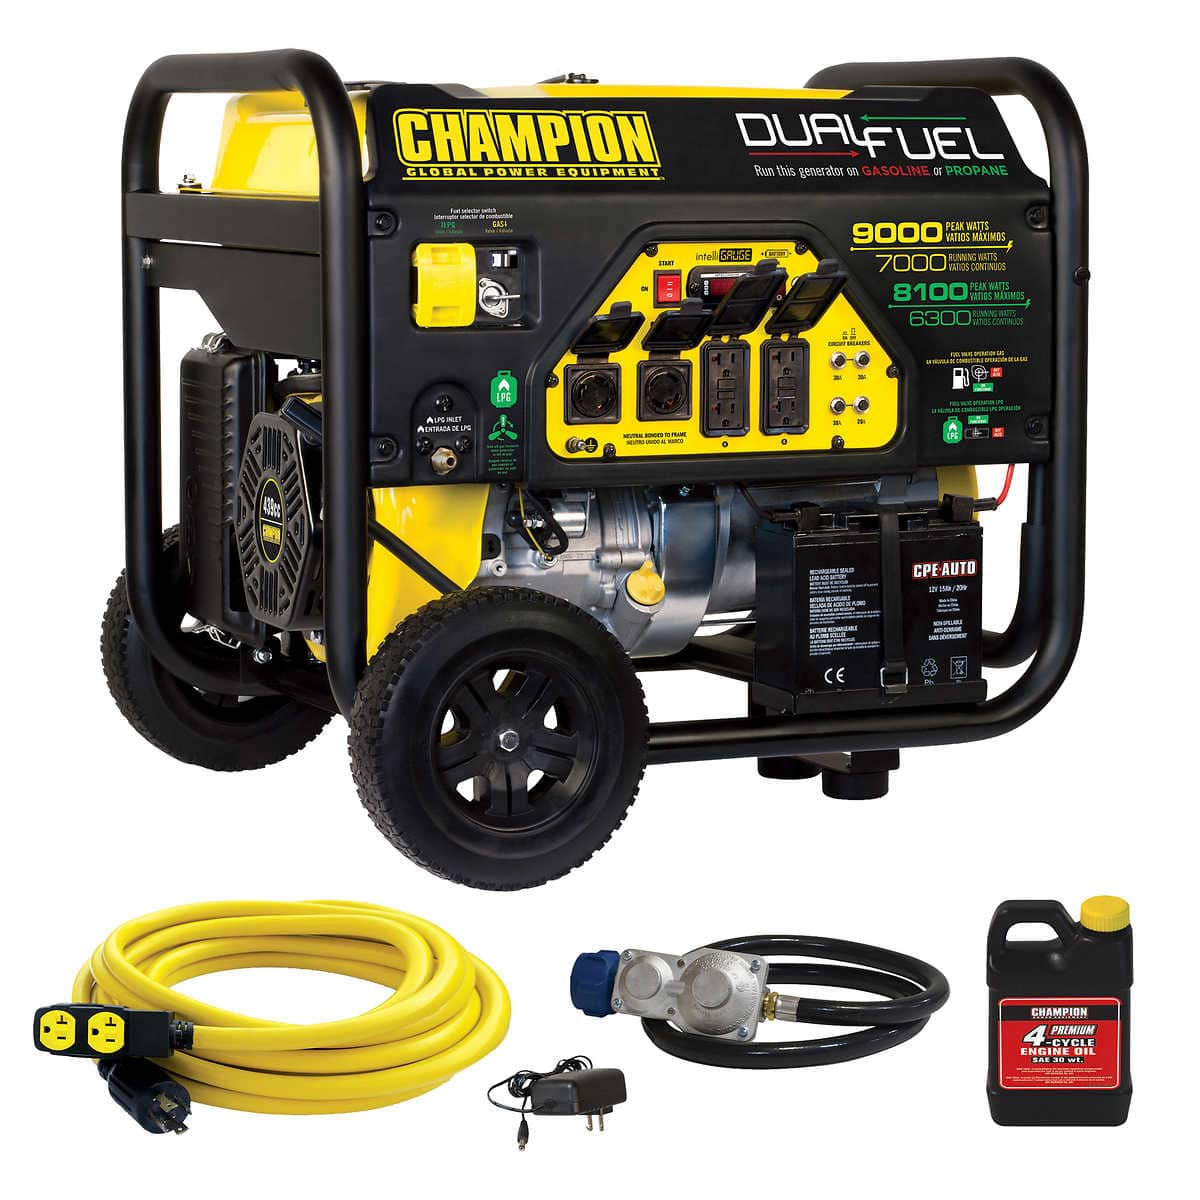 Champion 7000W Dual Fuel Generator with 25' 30 Amp Cord $549.99 online or $499.99 (YMMV) In Club